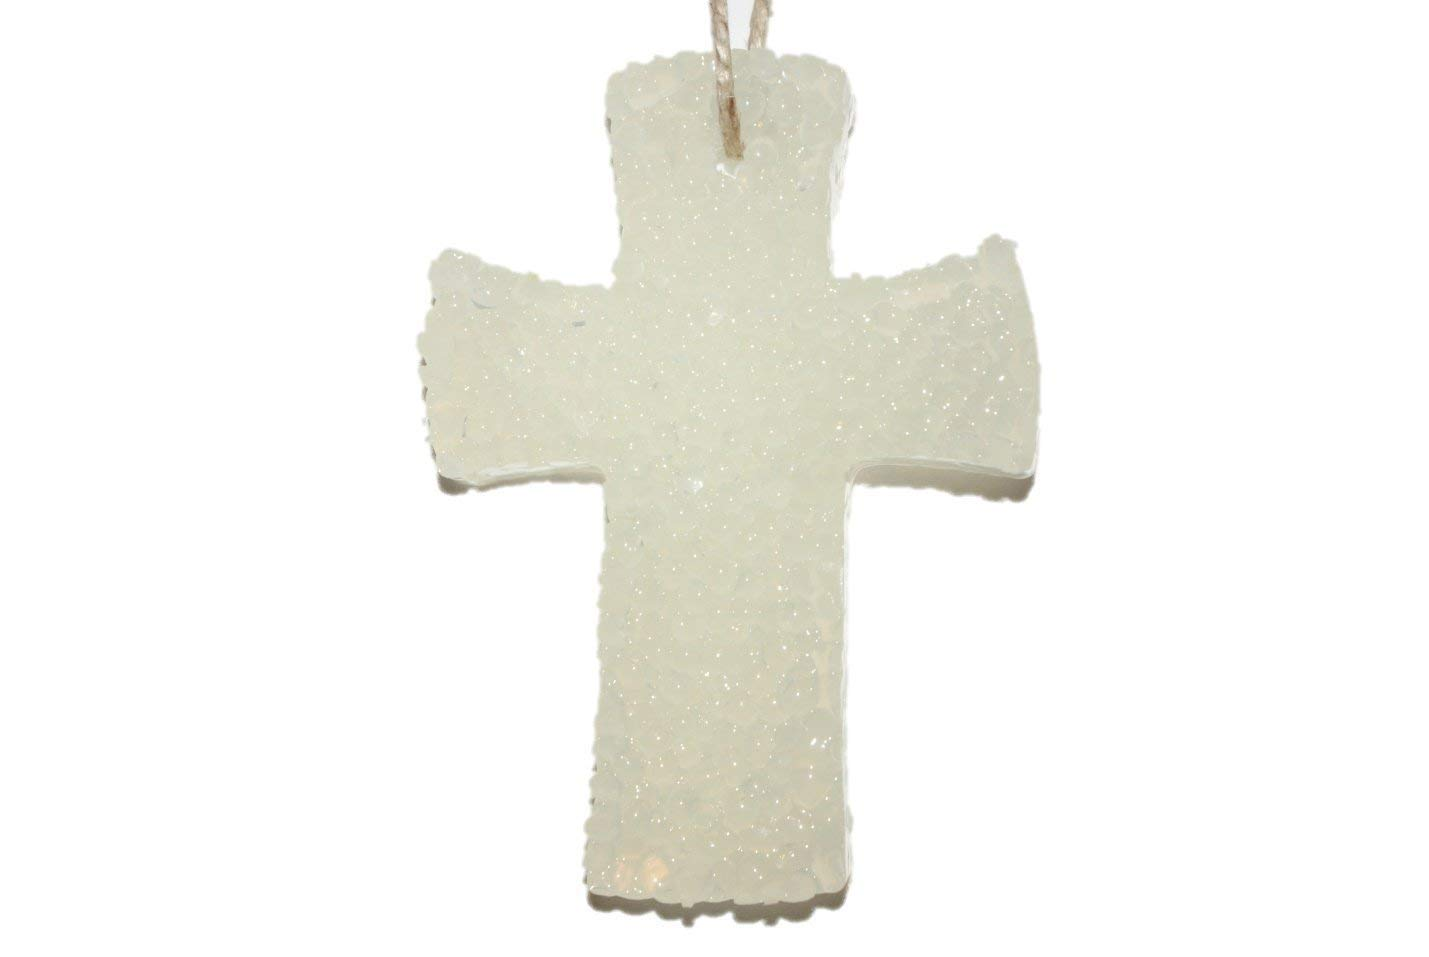 ChicWick Car Candle Leather and Lace Cross Shape Car Freshener Fragrance